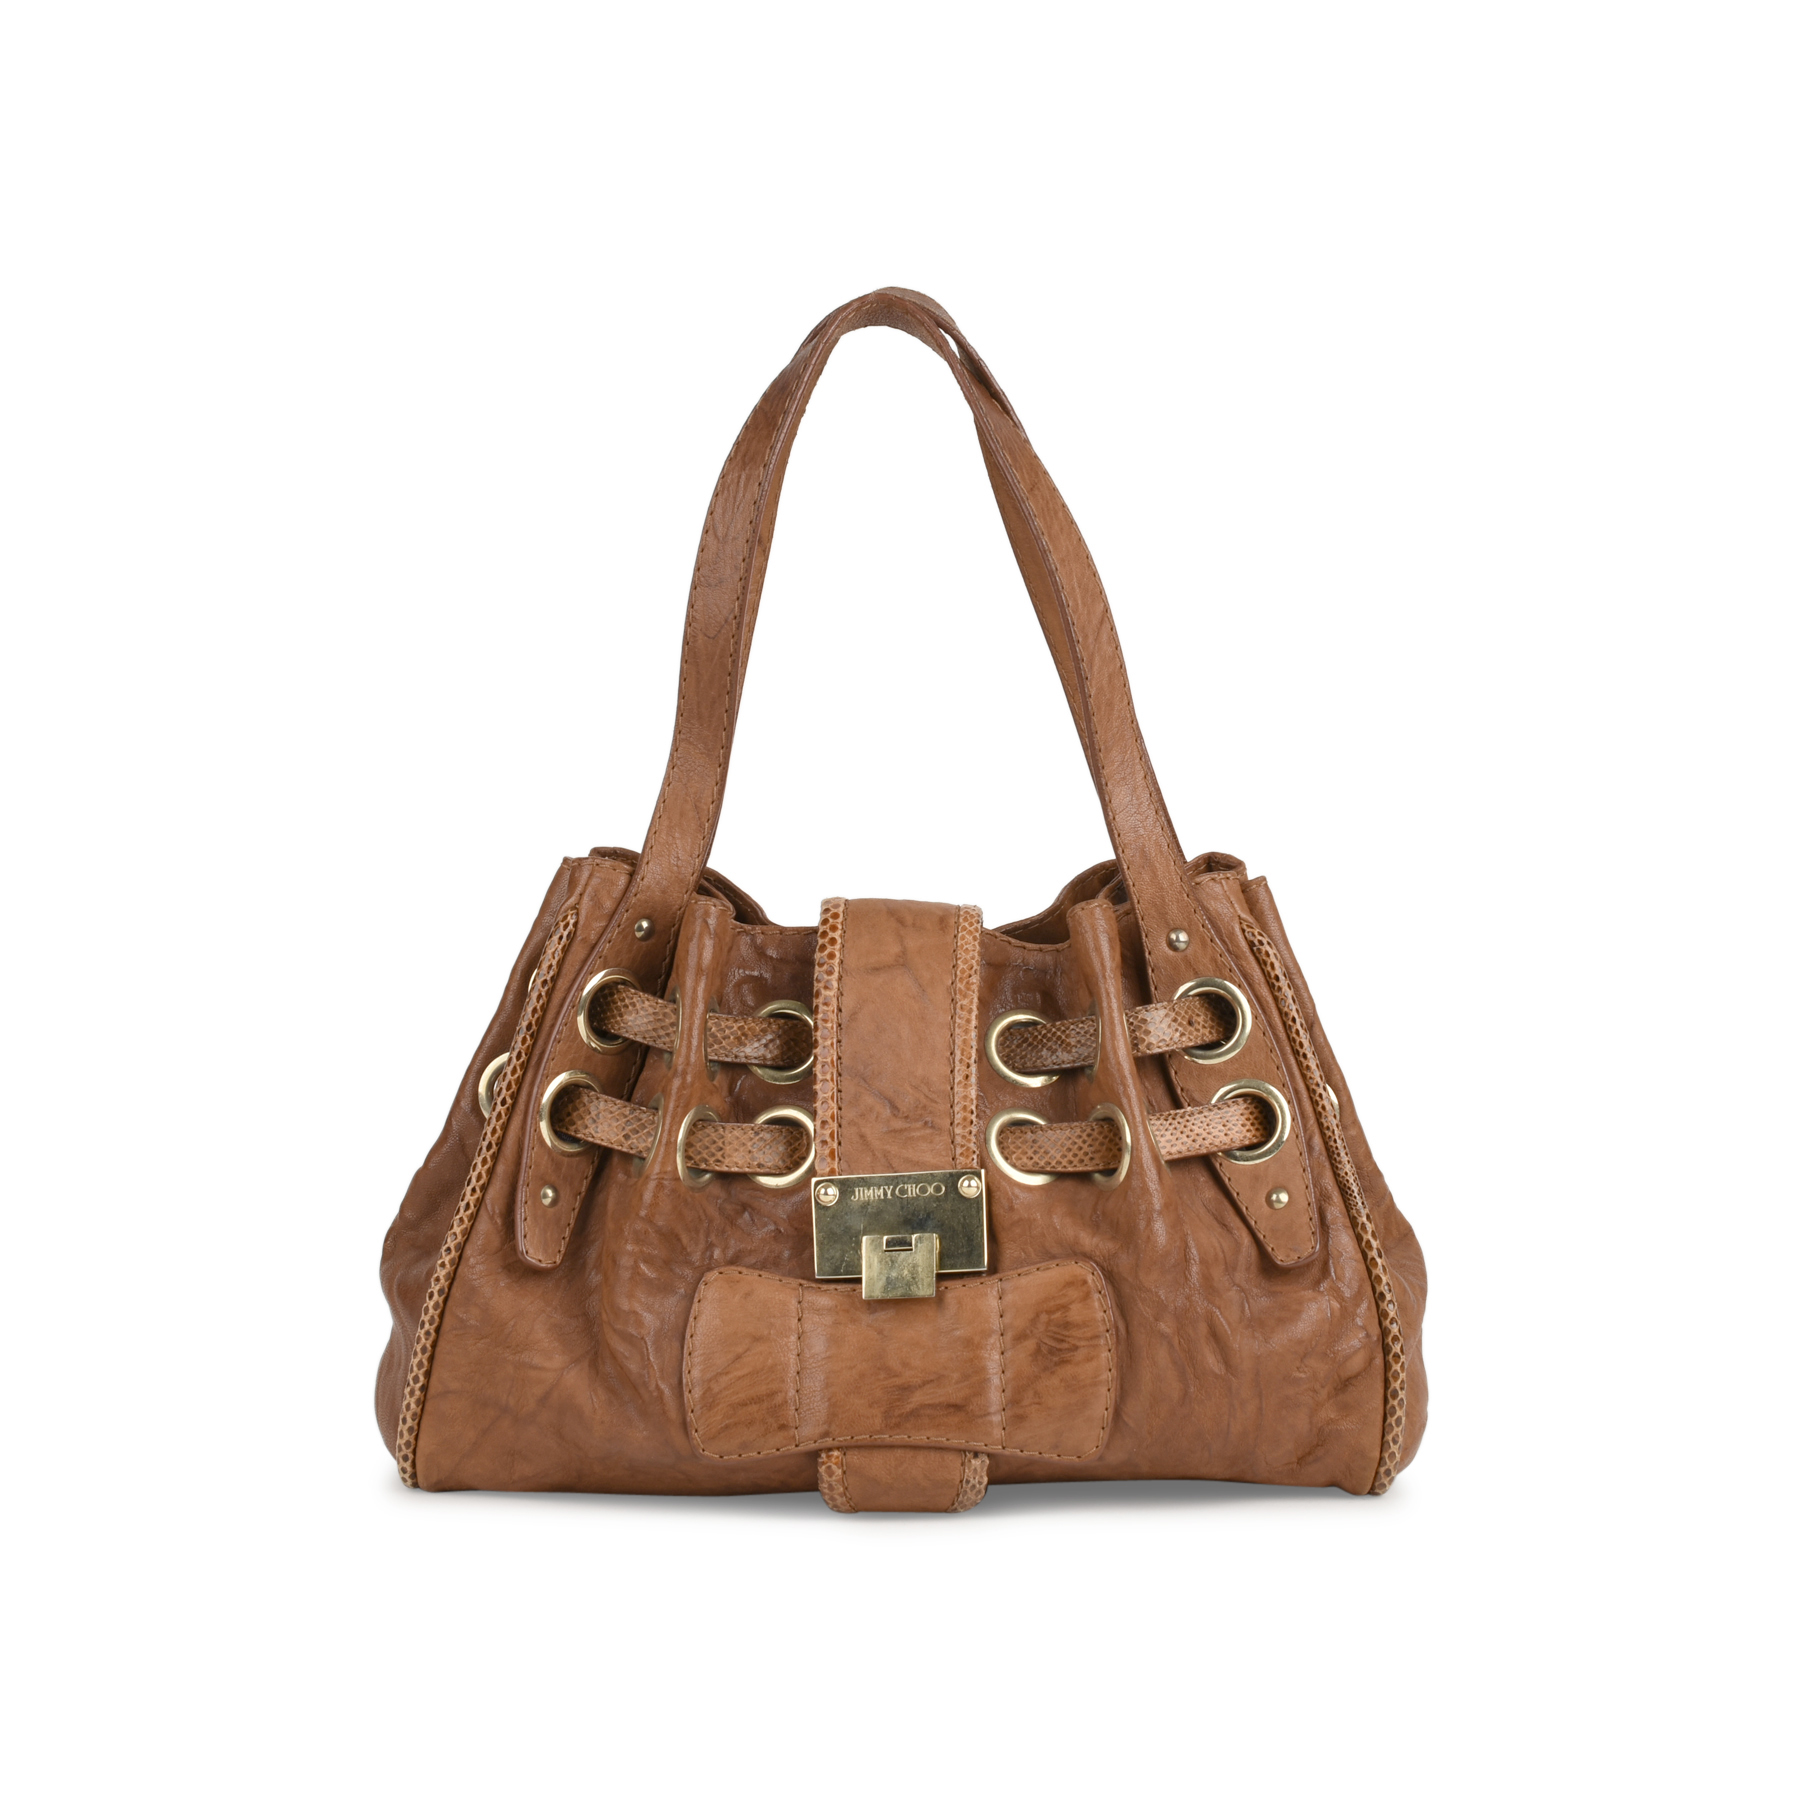 1a6c55d4a40 Authentic Second Hand Jimmy Choo Snakeskin-Trimmed Ramona Shoulder Bag  (PSS-415-00042) - THE FIFTH COLLECTION